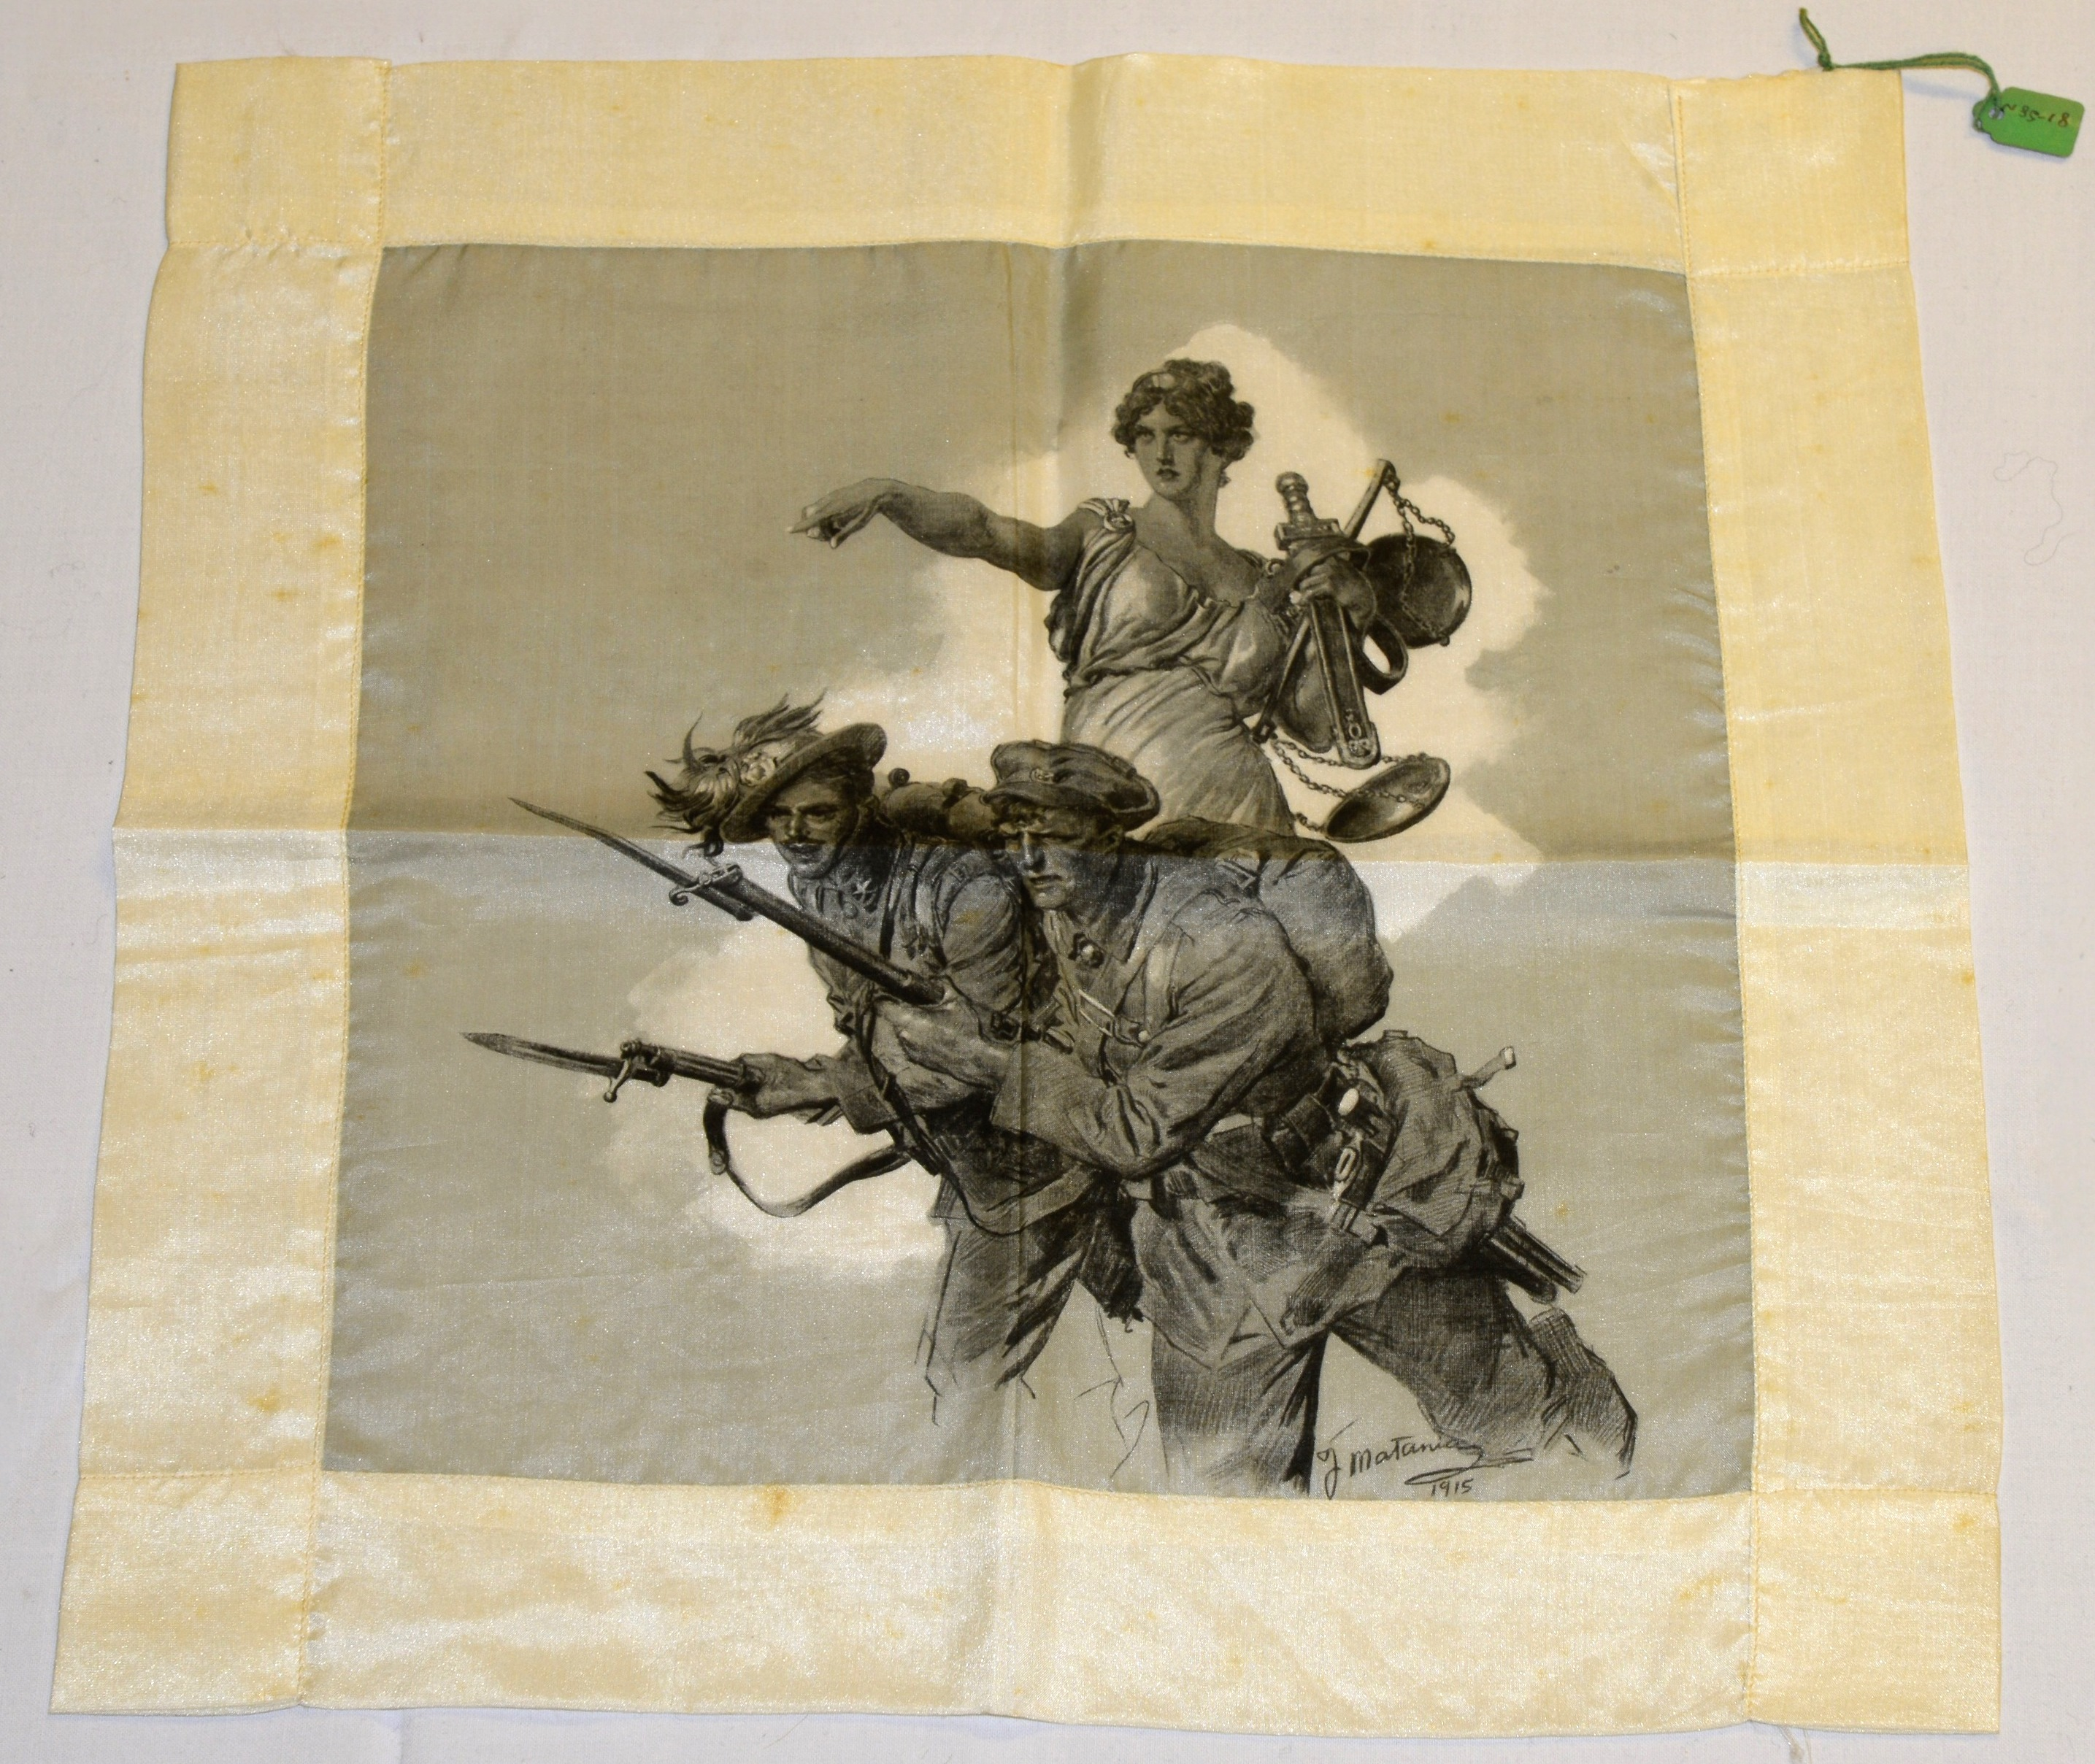 Handkerchief designed by Fortunino Matania, part of the collection of the Discovery Museum